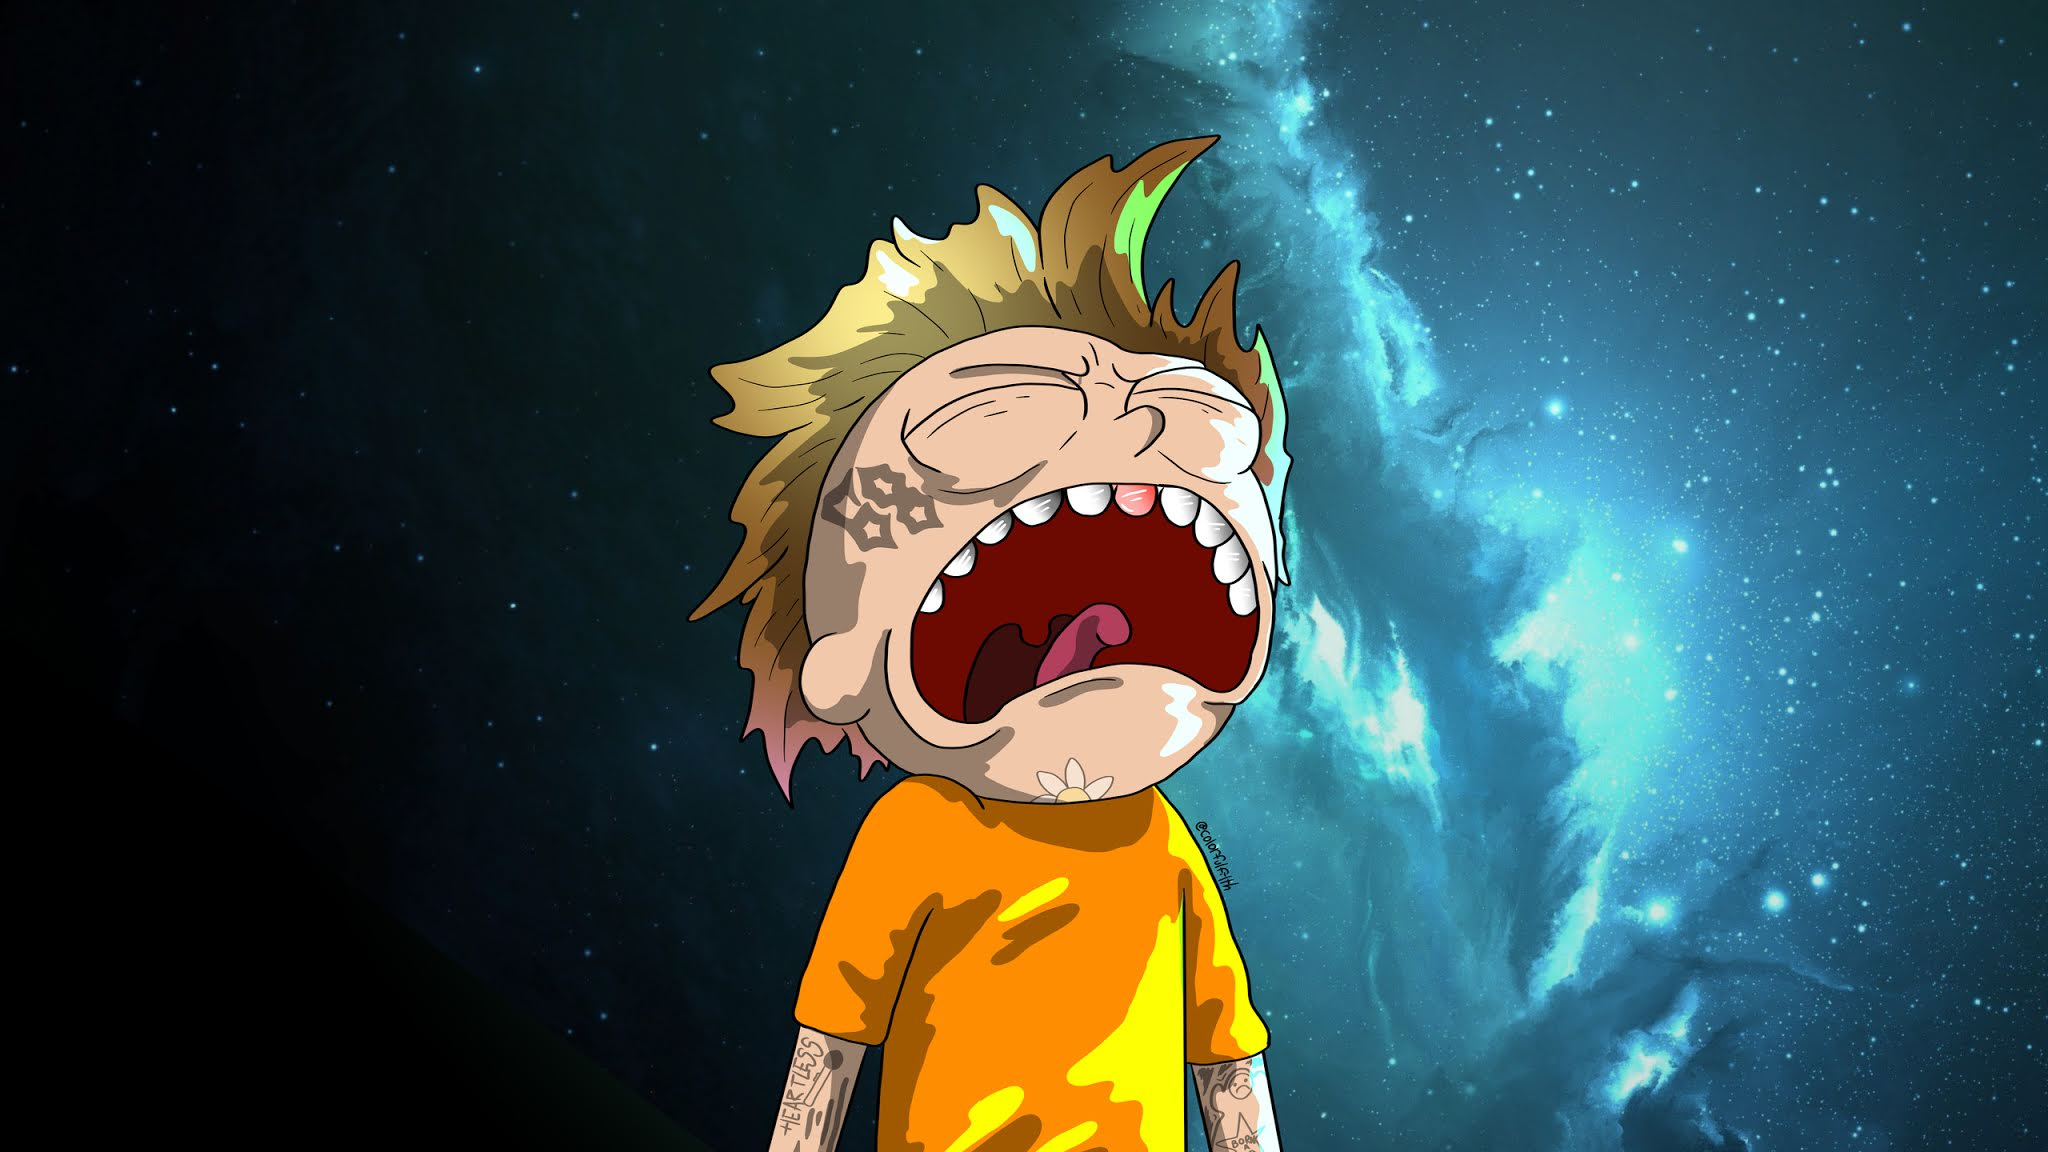 Crying Morty